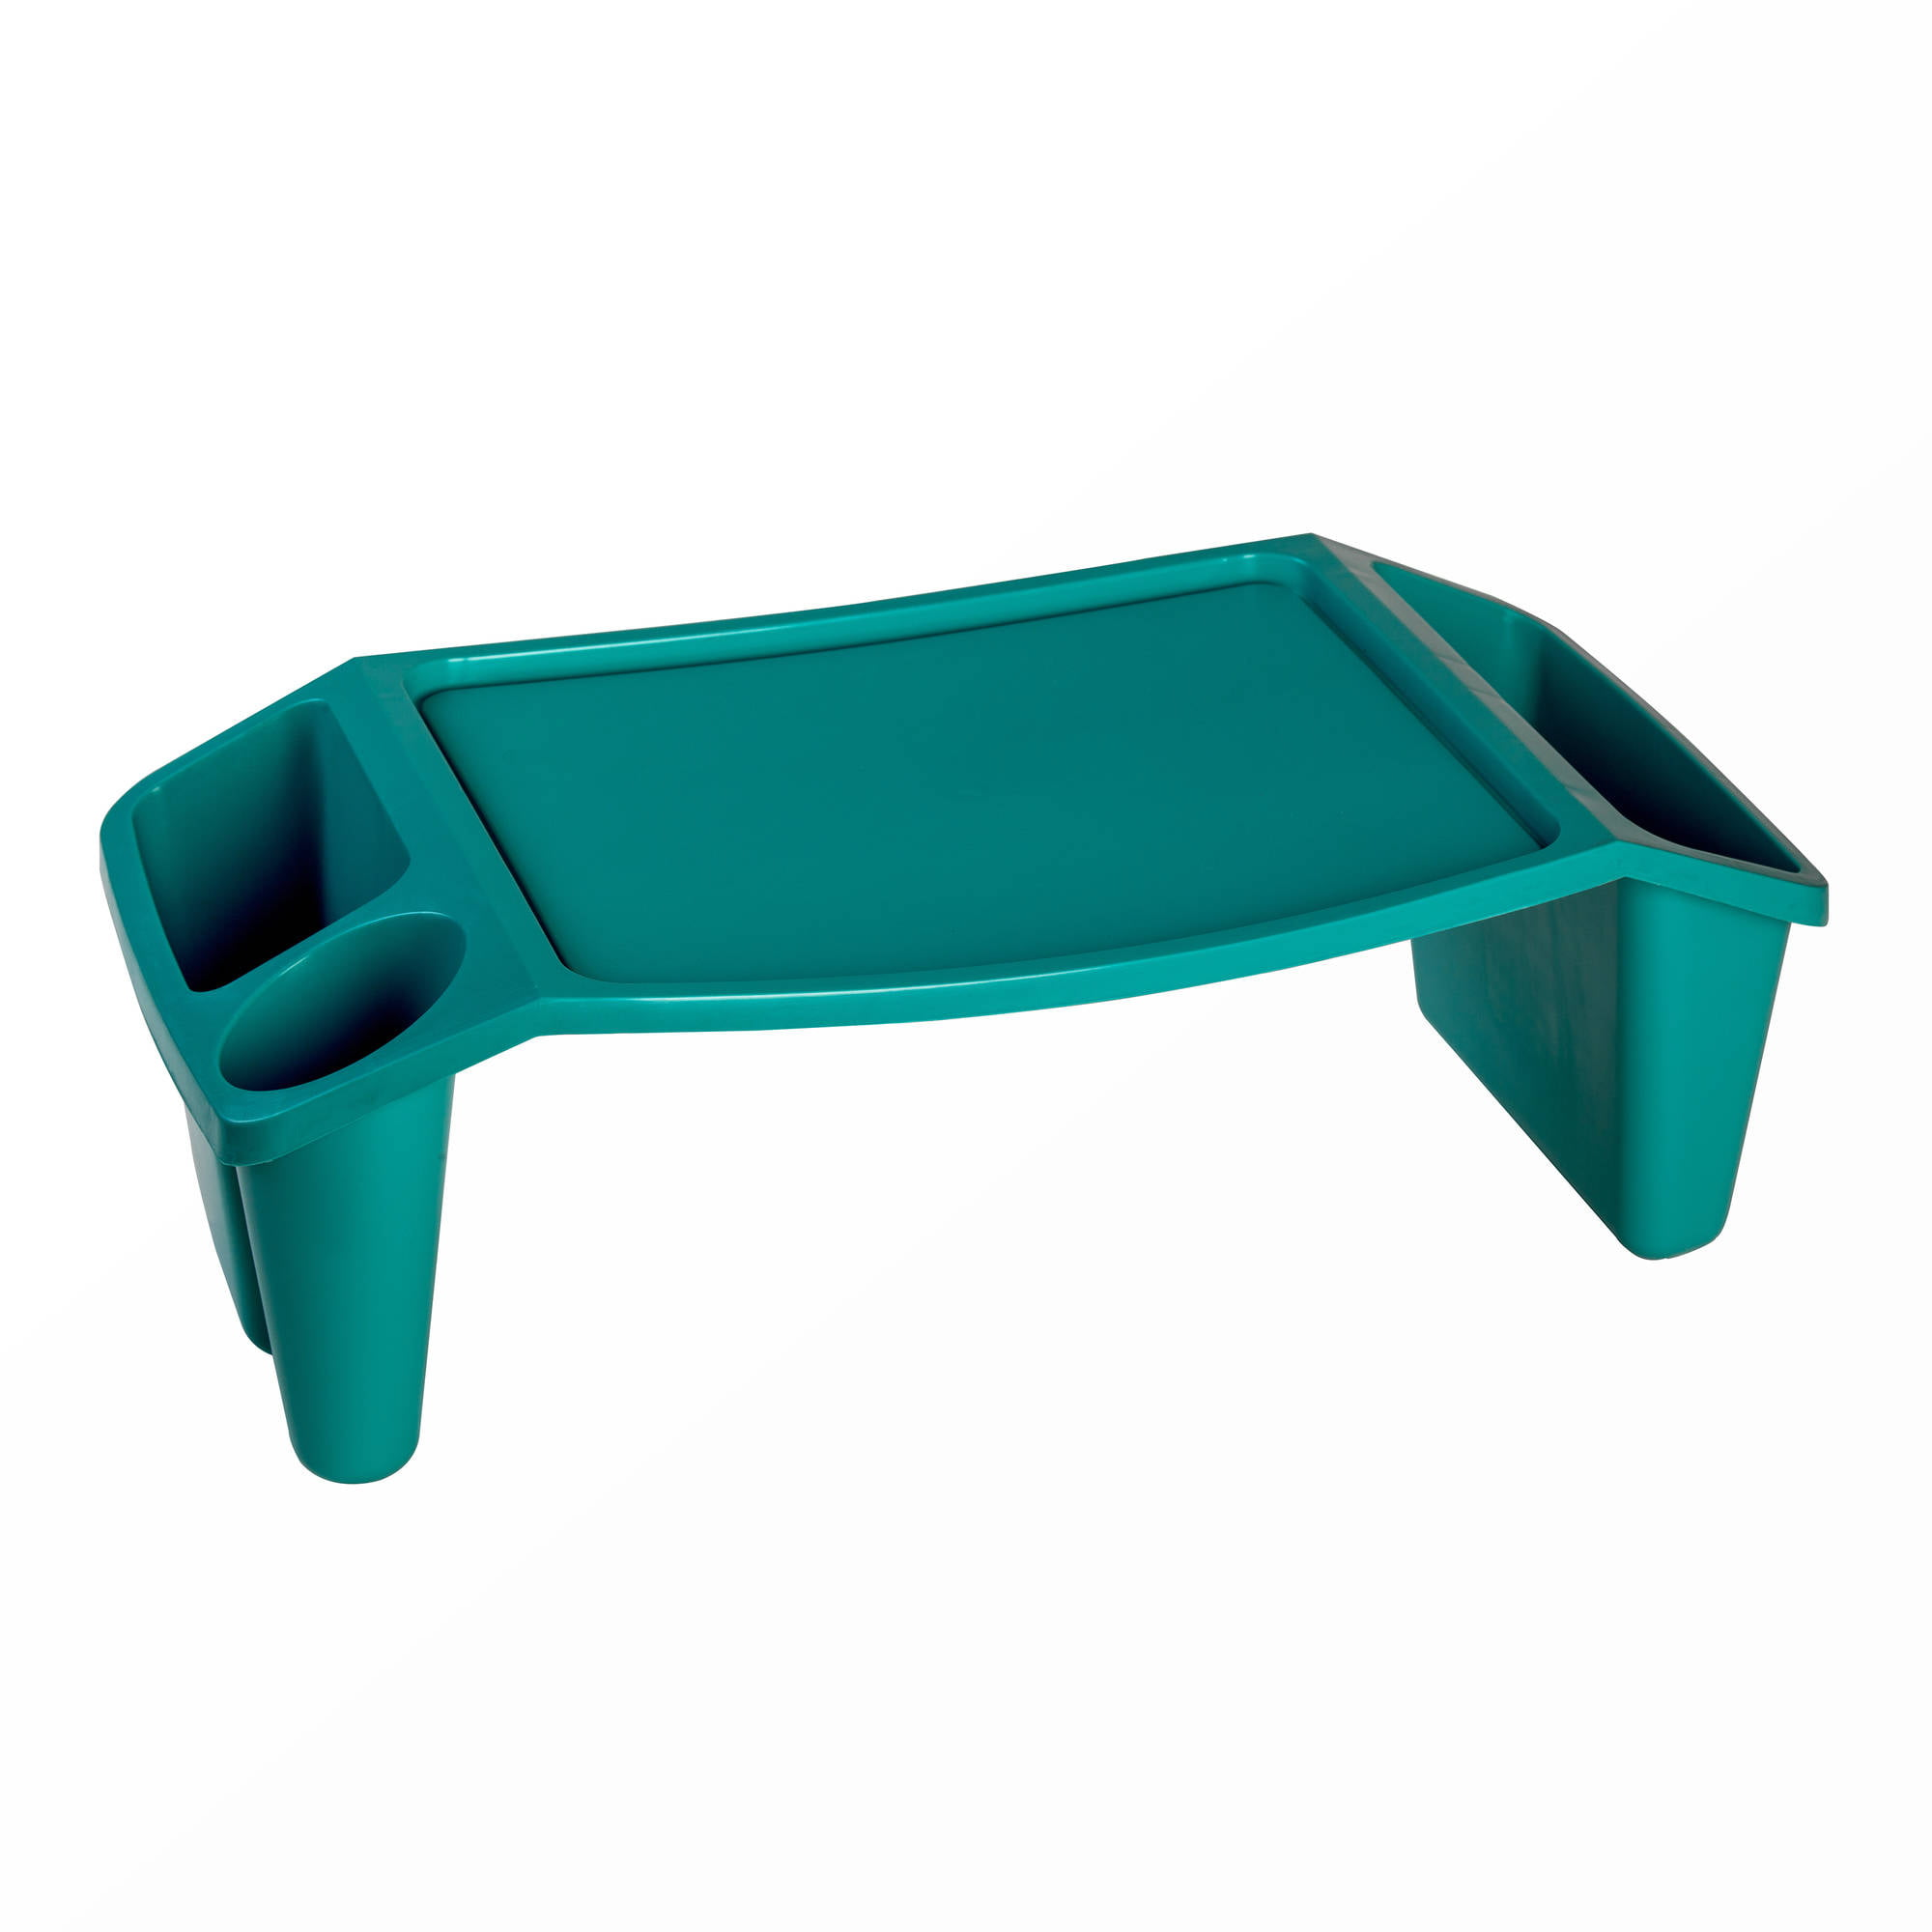 Pleasing Multi Purpose Large Turquoise Lap Tray 1 Each Walmart Com Machost Co Dining Chair Design Ideas Machostcouk